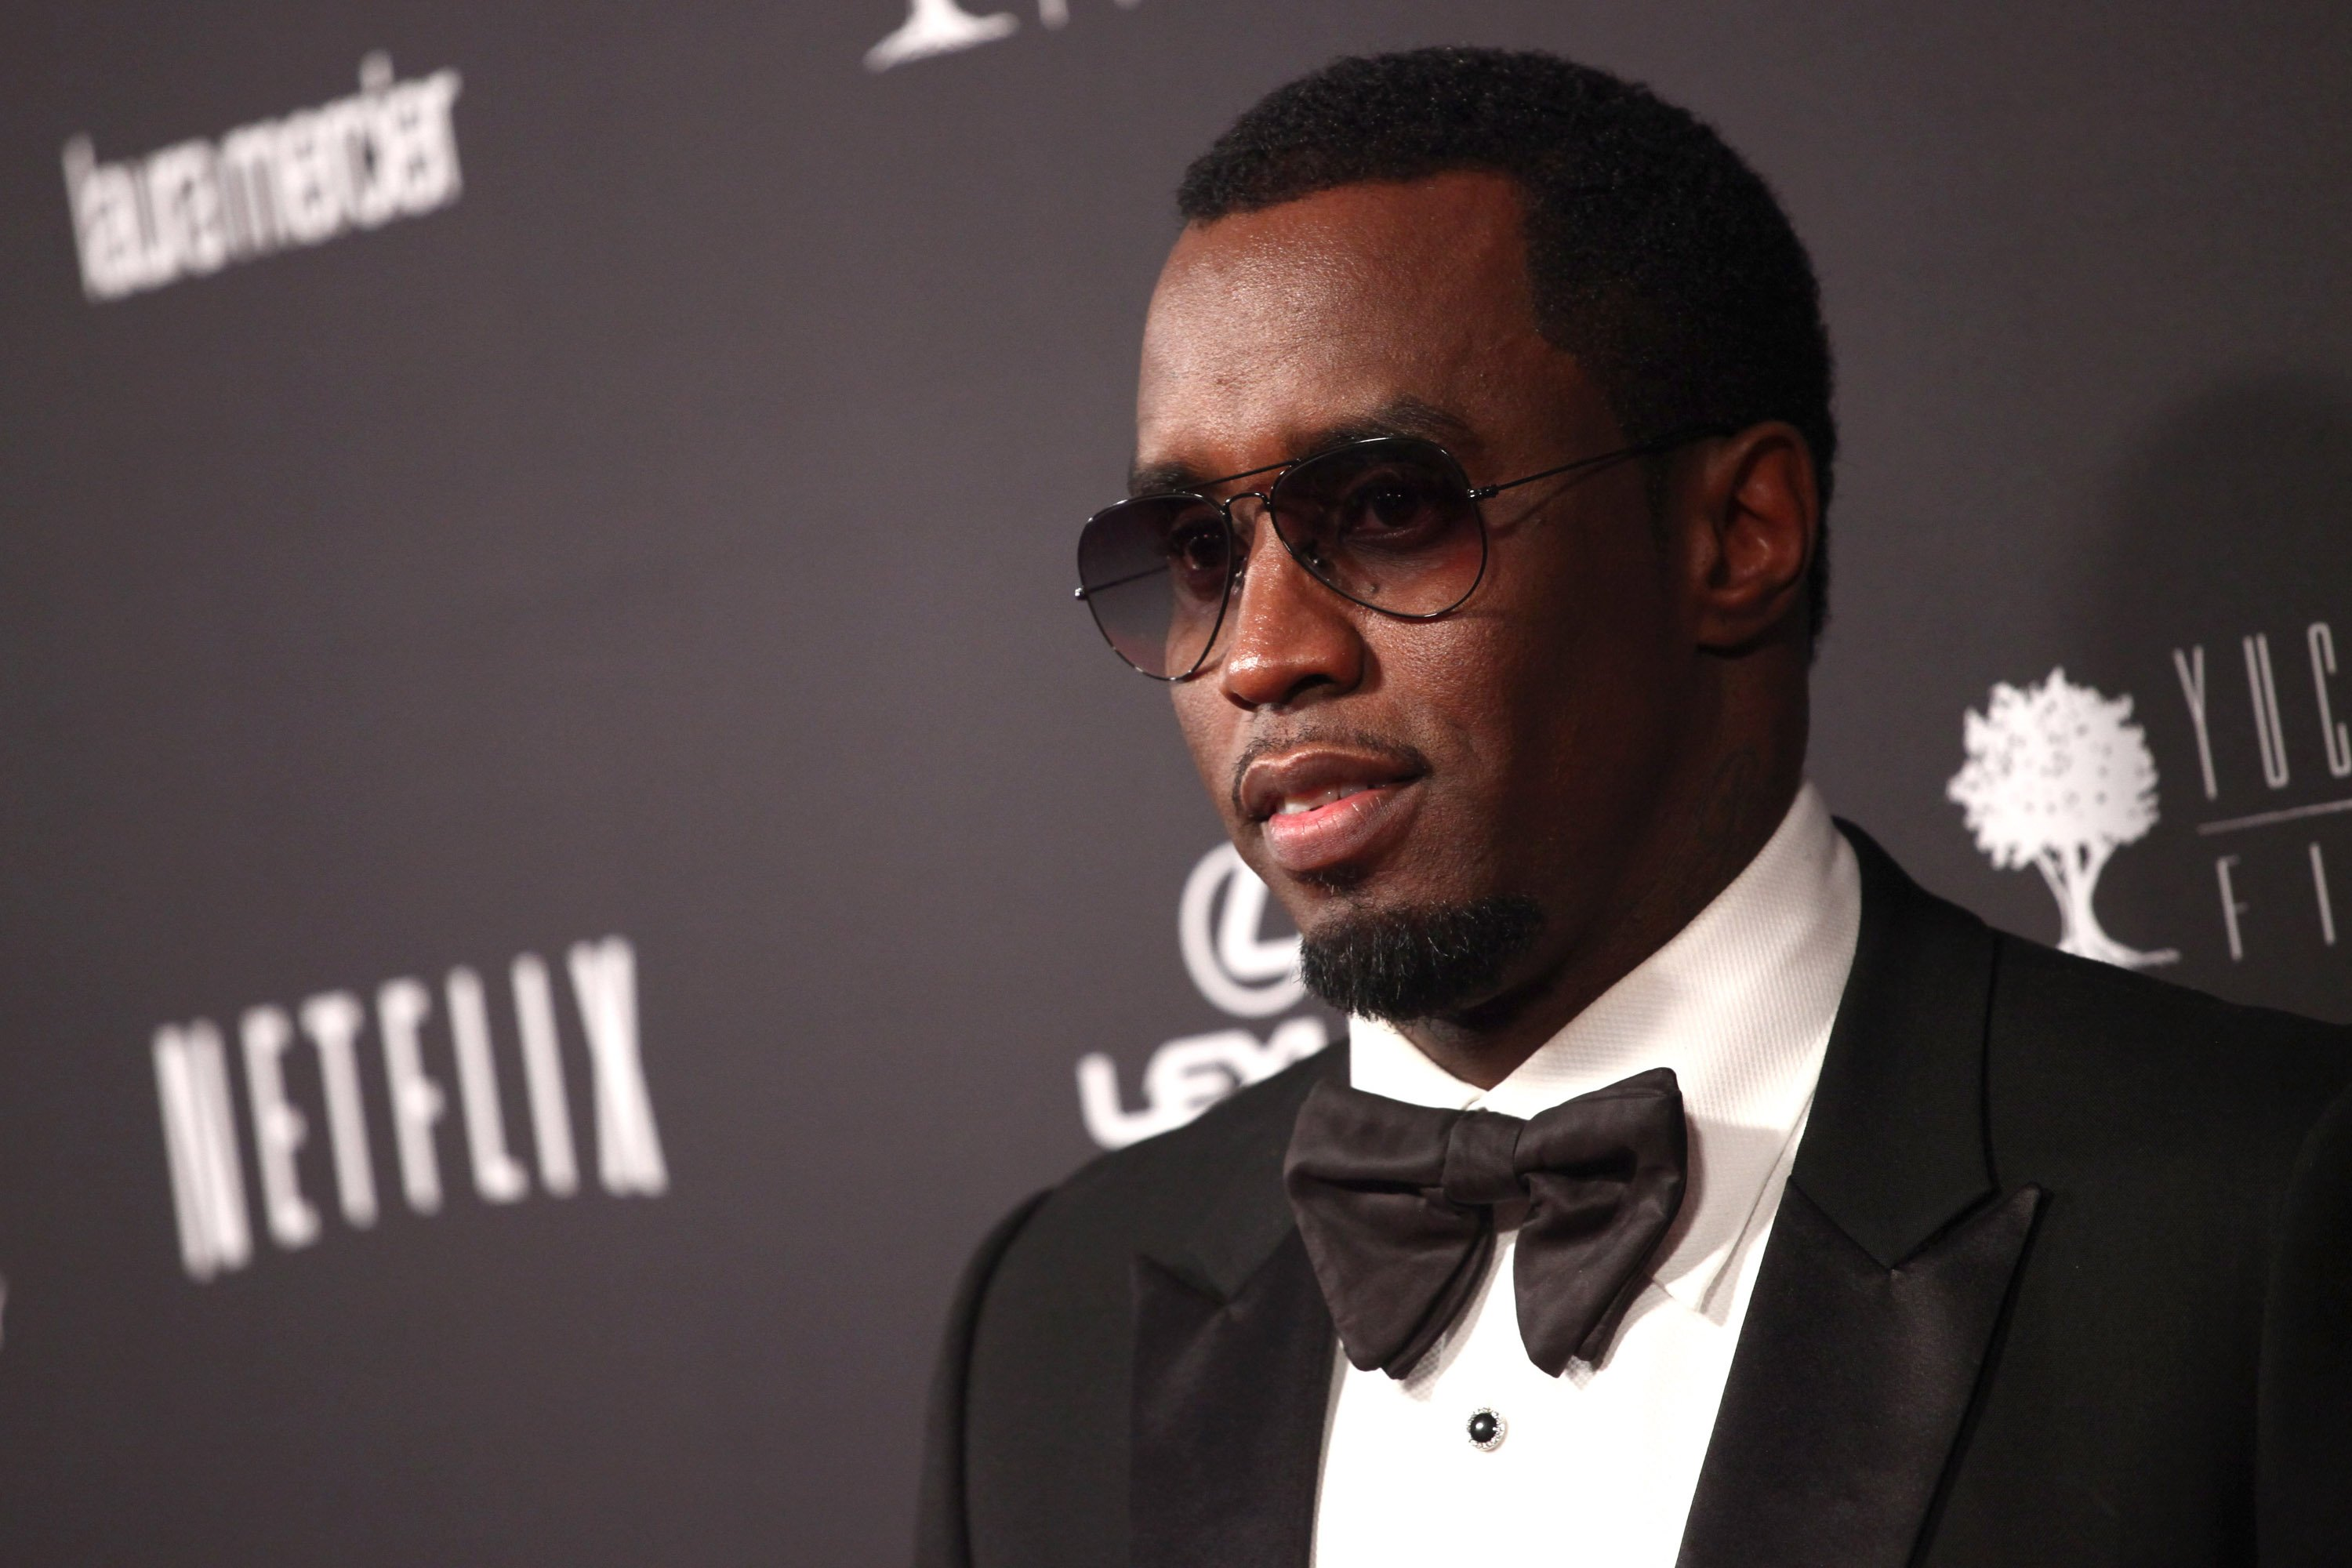 Sean Combs attends the Golden Globe Awards after-party on January 12, 2014, in Beverly Hills, California. | Source: Getty Images.